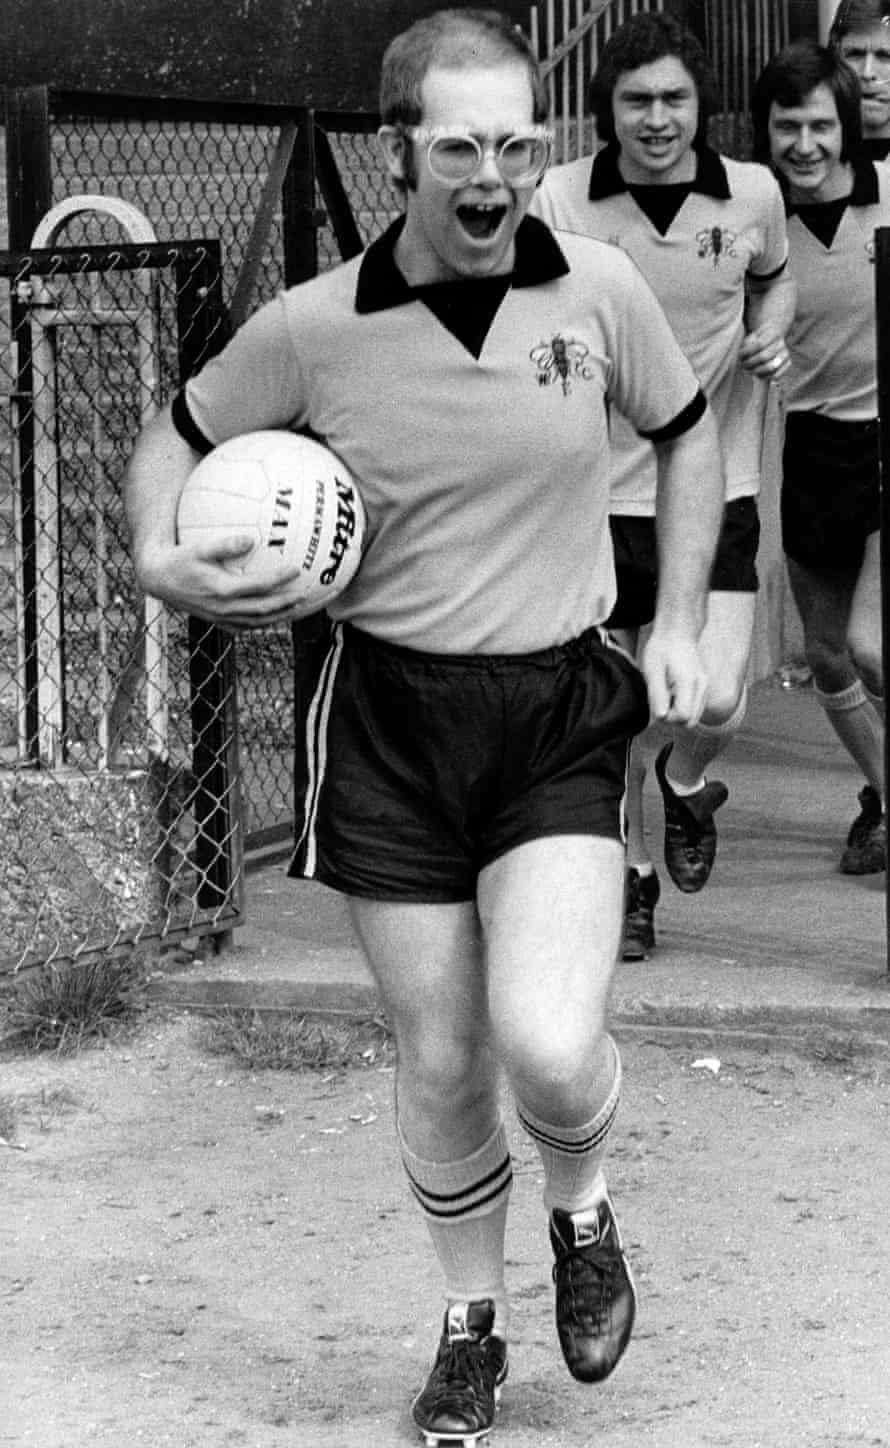 With Watford FC, 1974.